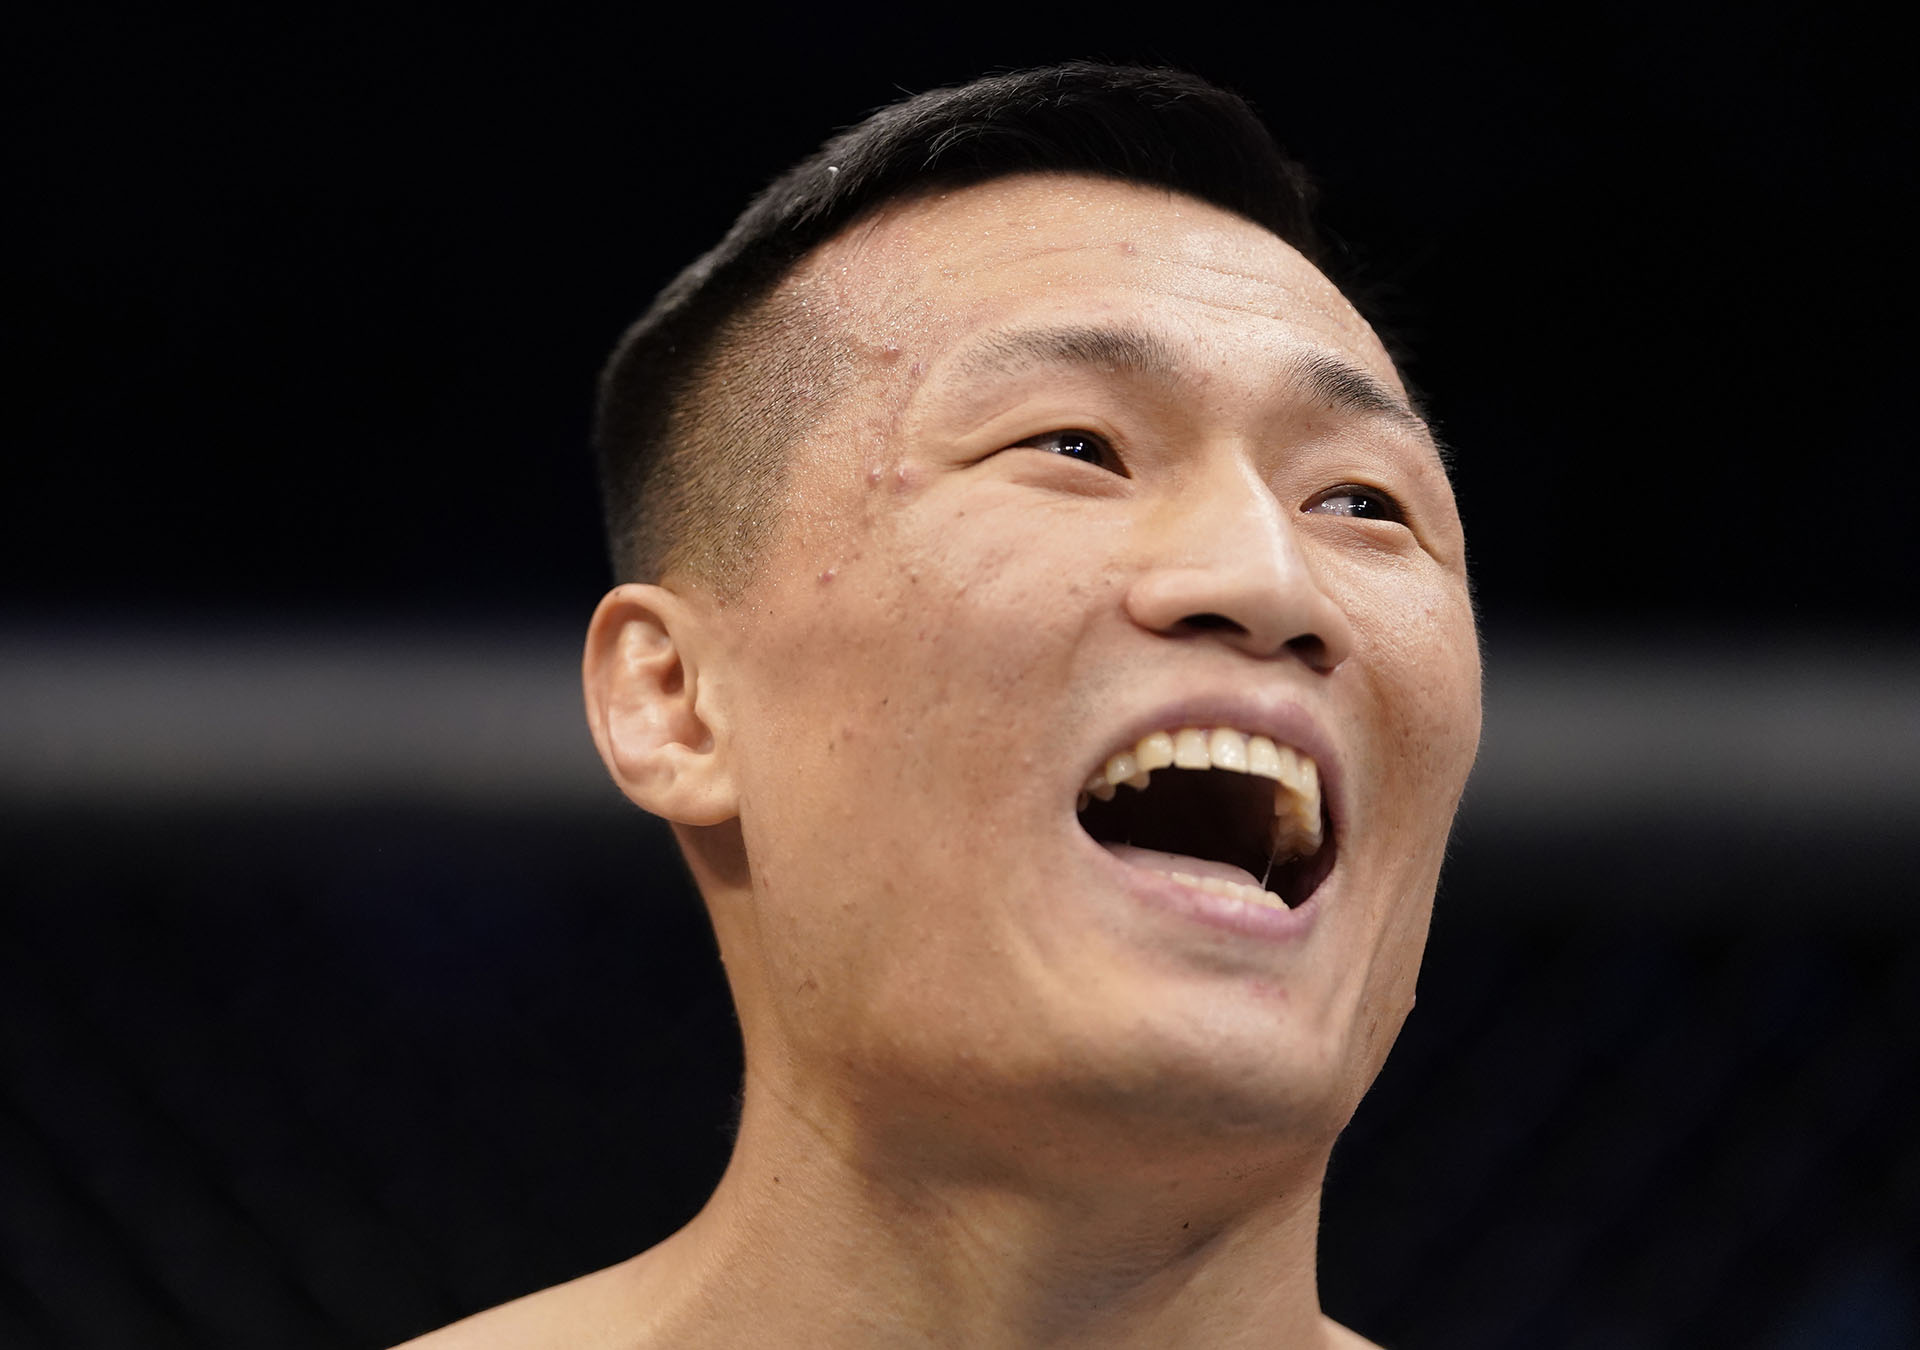 Chan Sung Jung of South Korea celebrates after knocking out Frankie Edgar in their featherweight fight during the UFC Fight Night event at Sajik Arena 3 on December 21, 2019 in Busan, South Korea. (Photo by Jeff Bottari/Zuffa LLC via Getty Images)